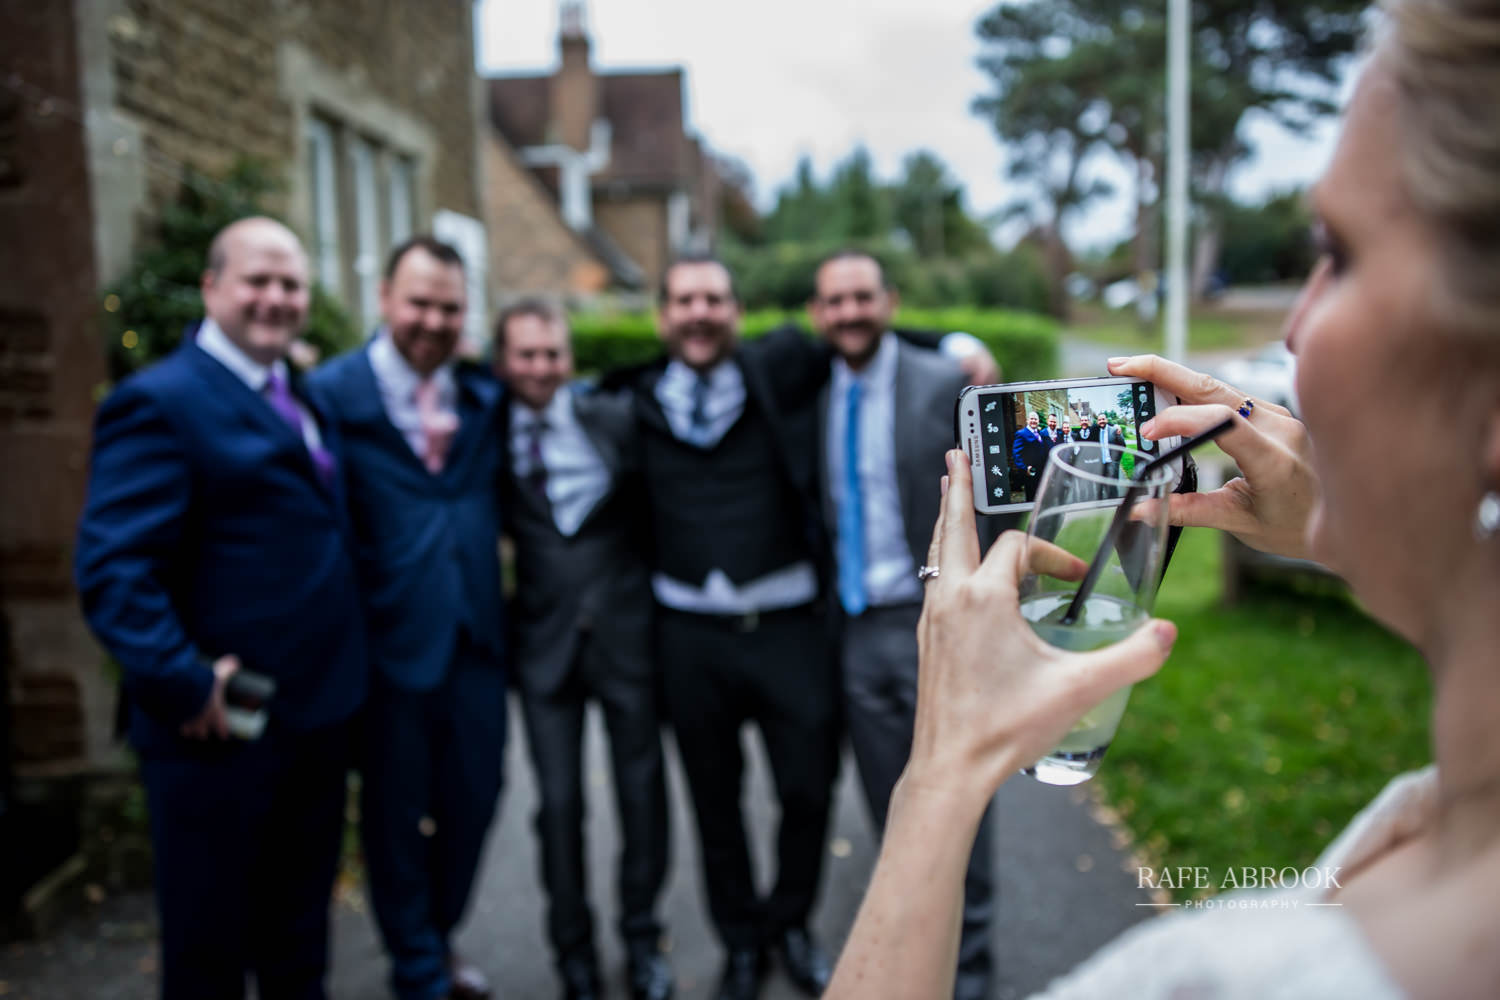 thursley village hall guildford surrey wedding hertfordshire wedding photographer-1320.jpg